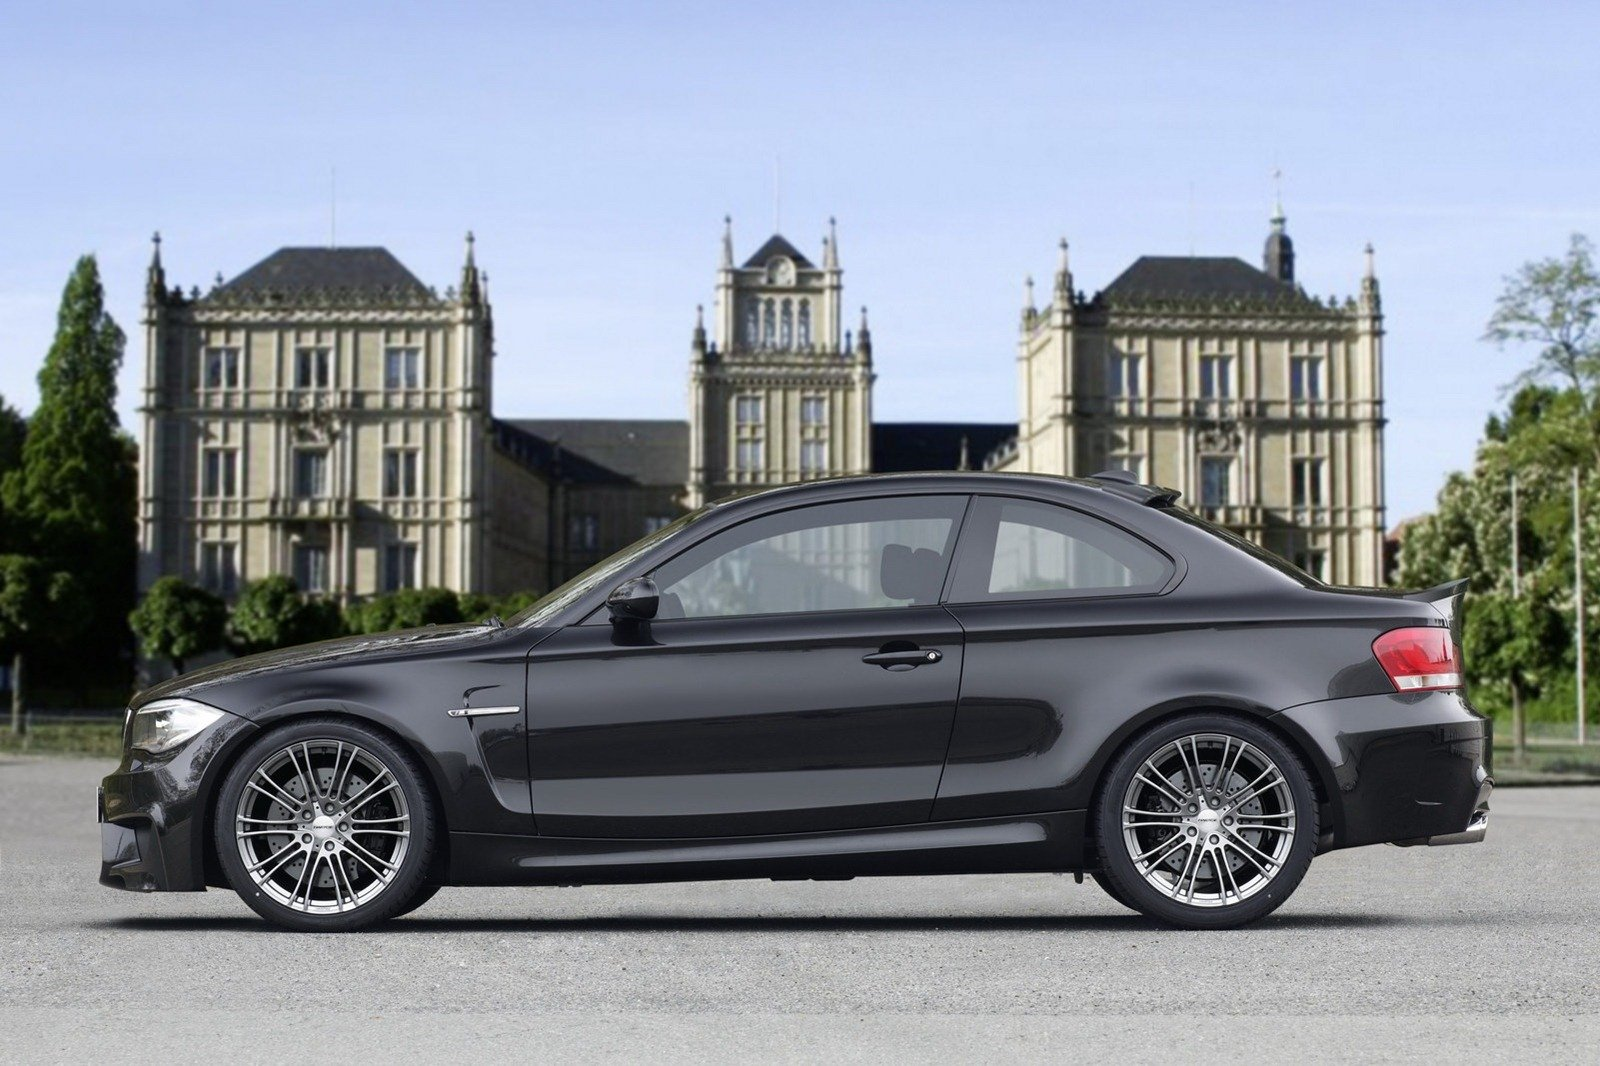 2012 bmw 1 series m coupe by hartge review top speed. Black Bedroom Furniture Sets. Home Design Ideas